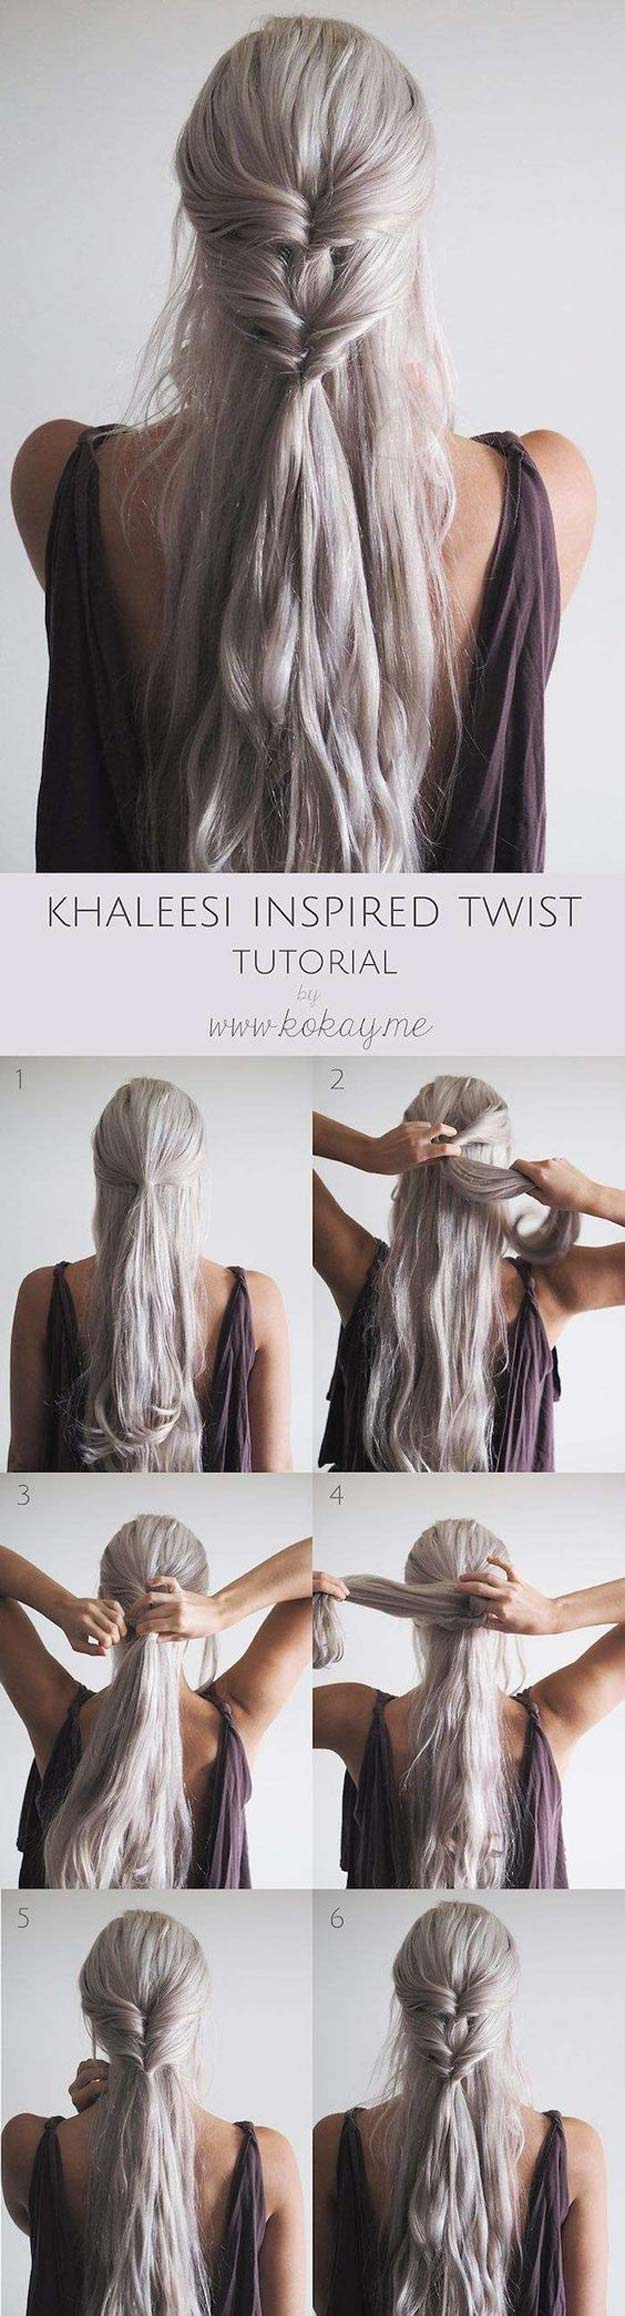 36 best hairstyles for long hair best hairstyles for long hair khaleesi inspired twist step by step tutorials for easy solutioingenieria Images